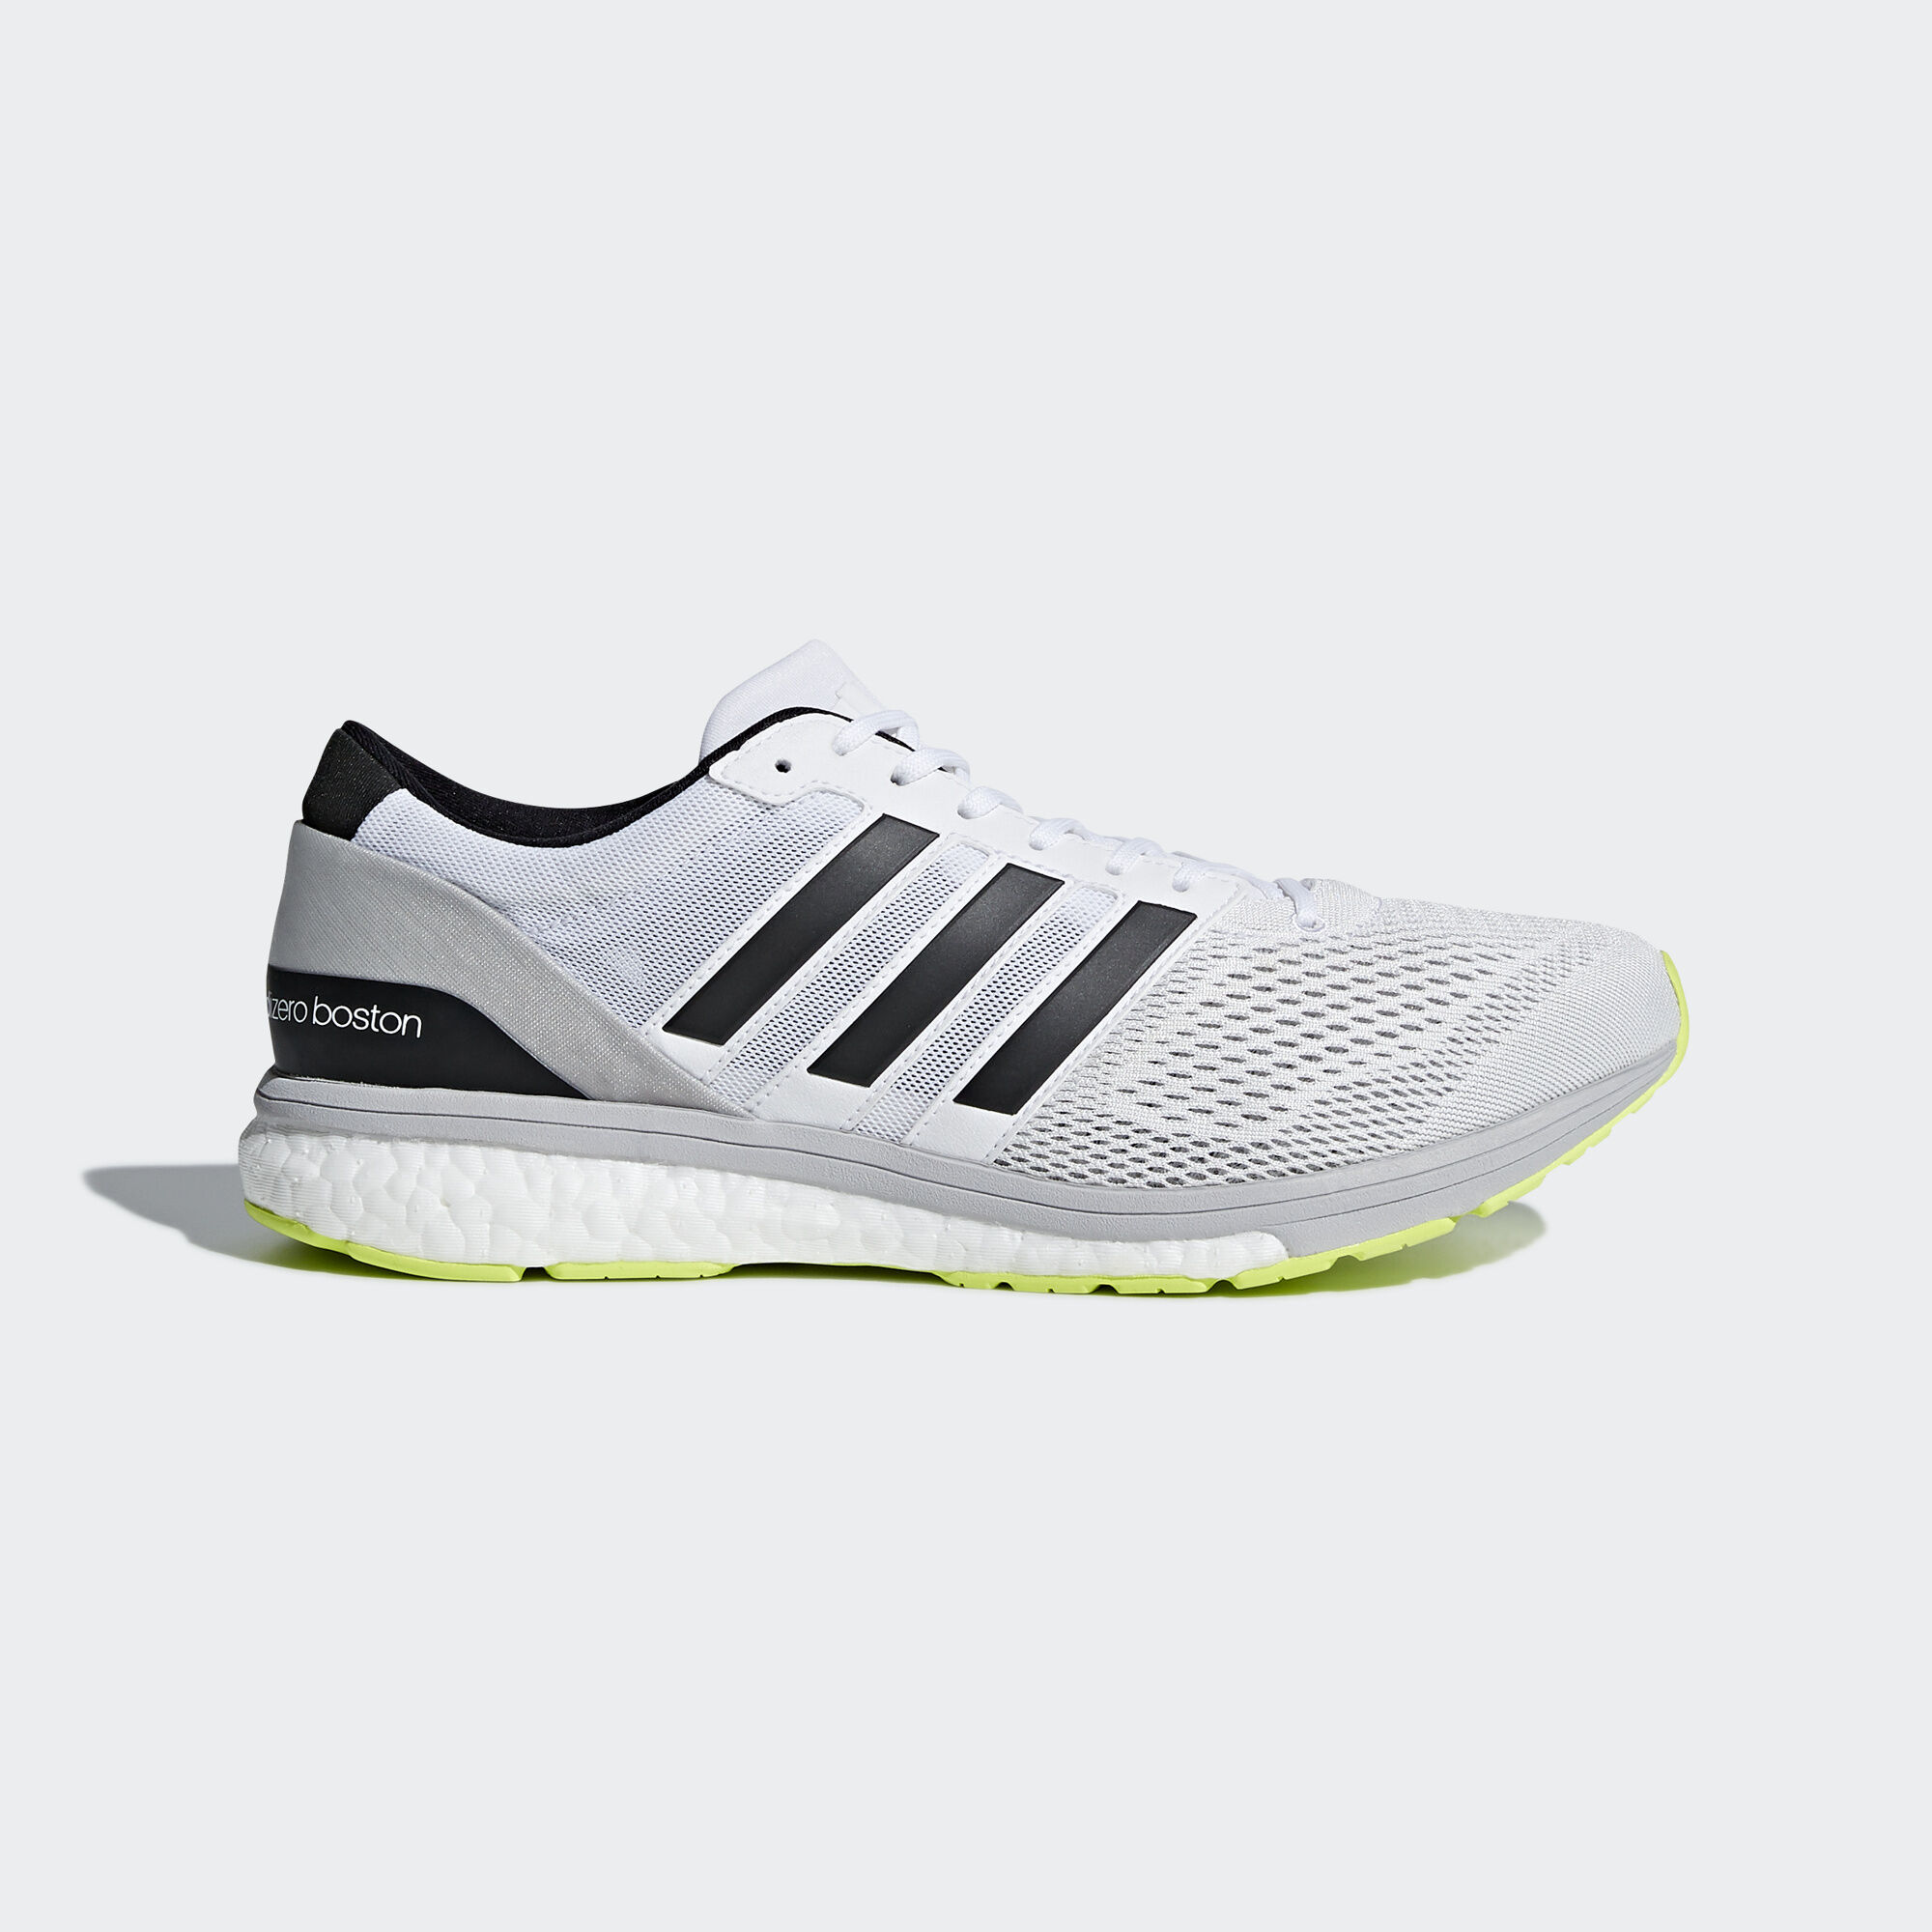 wholesale dealer 846dd b629e ... low cost adidas adizero boston 6 shoes running white silver metallic  solar yellow cg3142 343b6 ed3eb